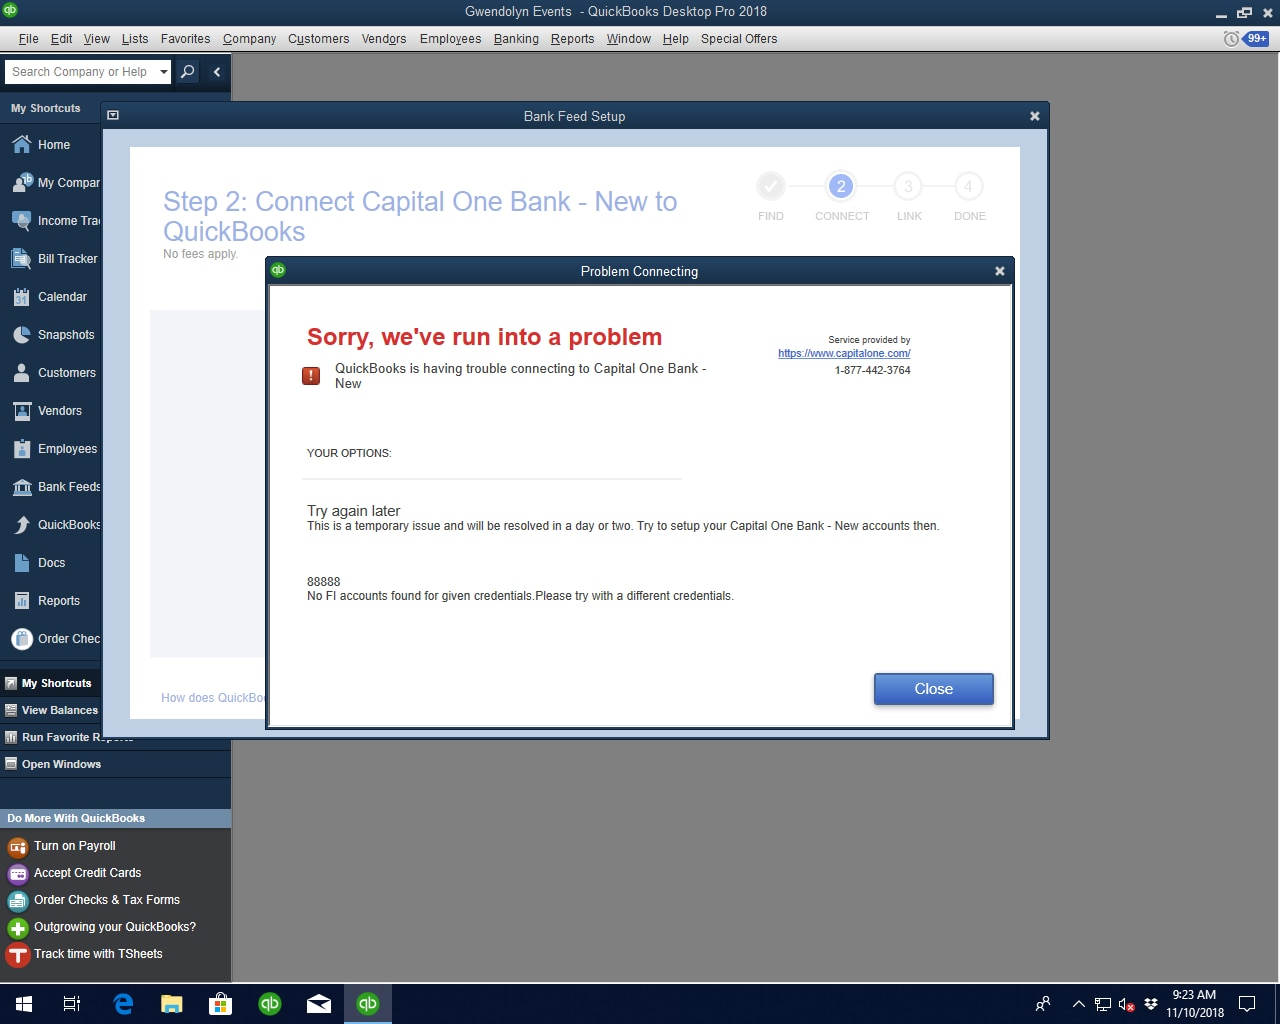 88888 Error when connecting to Capital One-New - QuickBooks